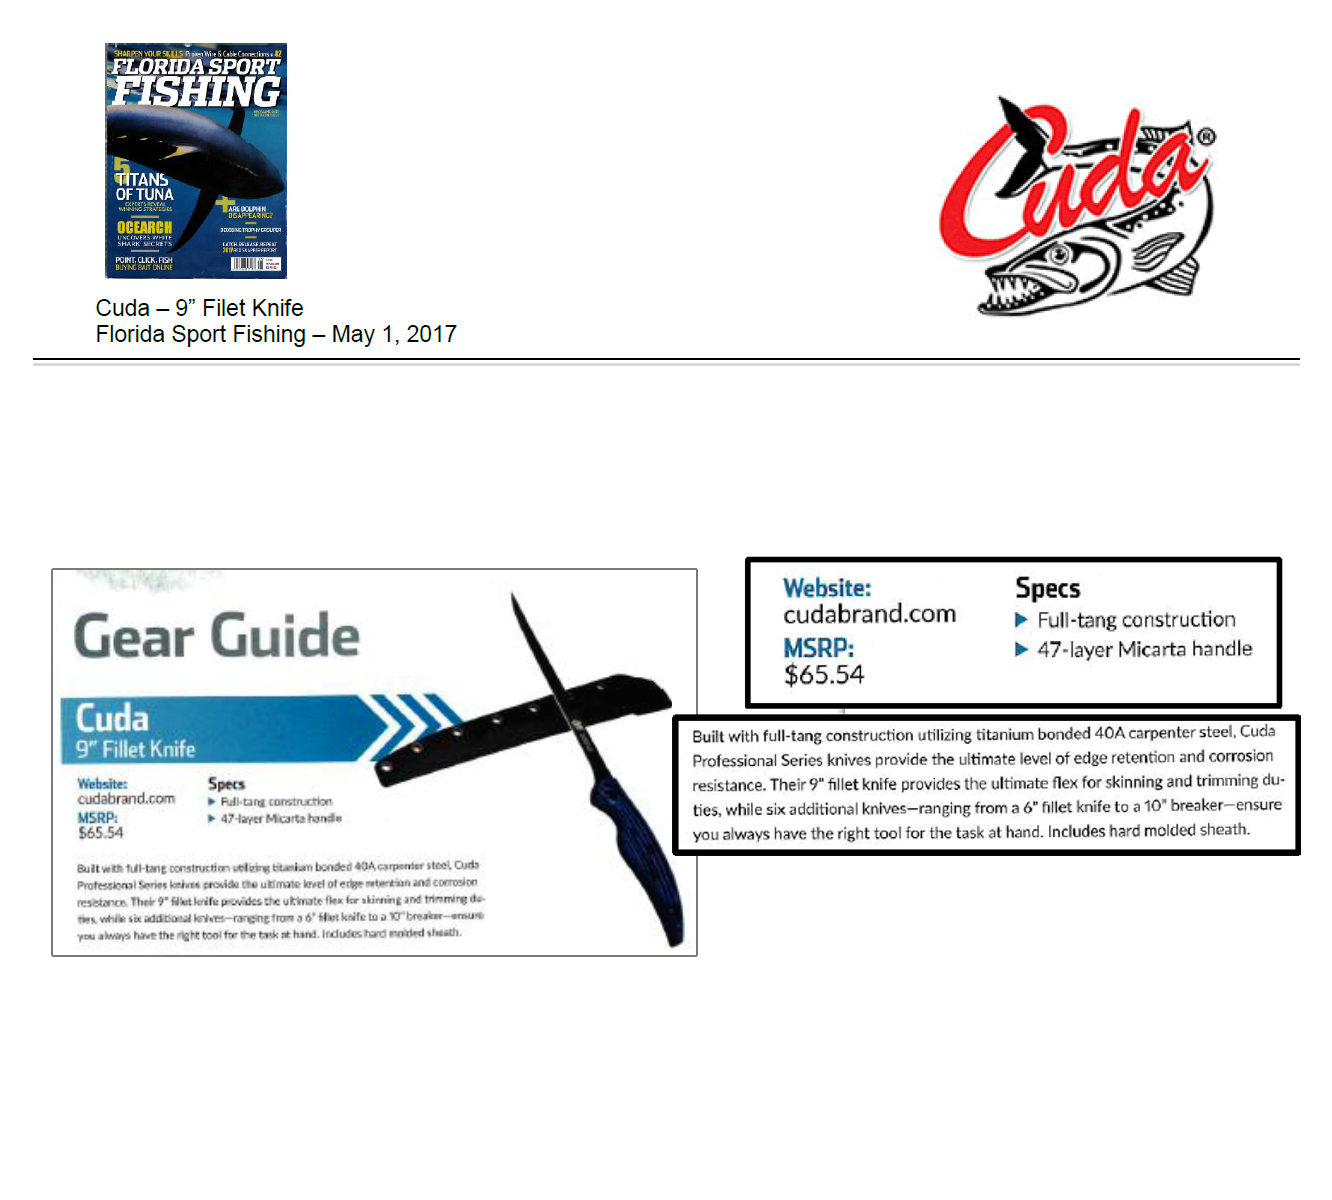 Gear Guide - Featured in Florida Sport Fishing – May 1, 2017